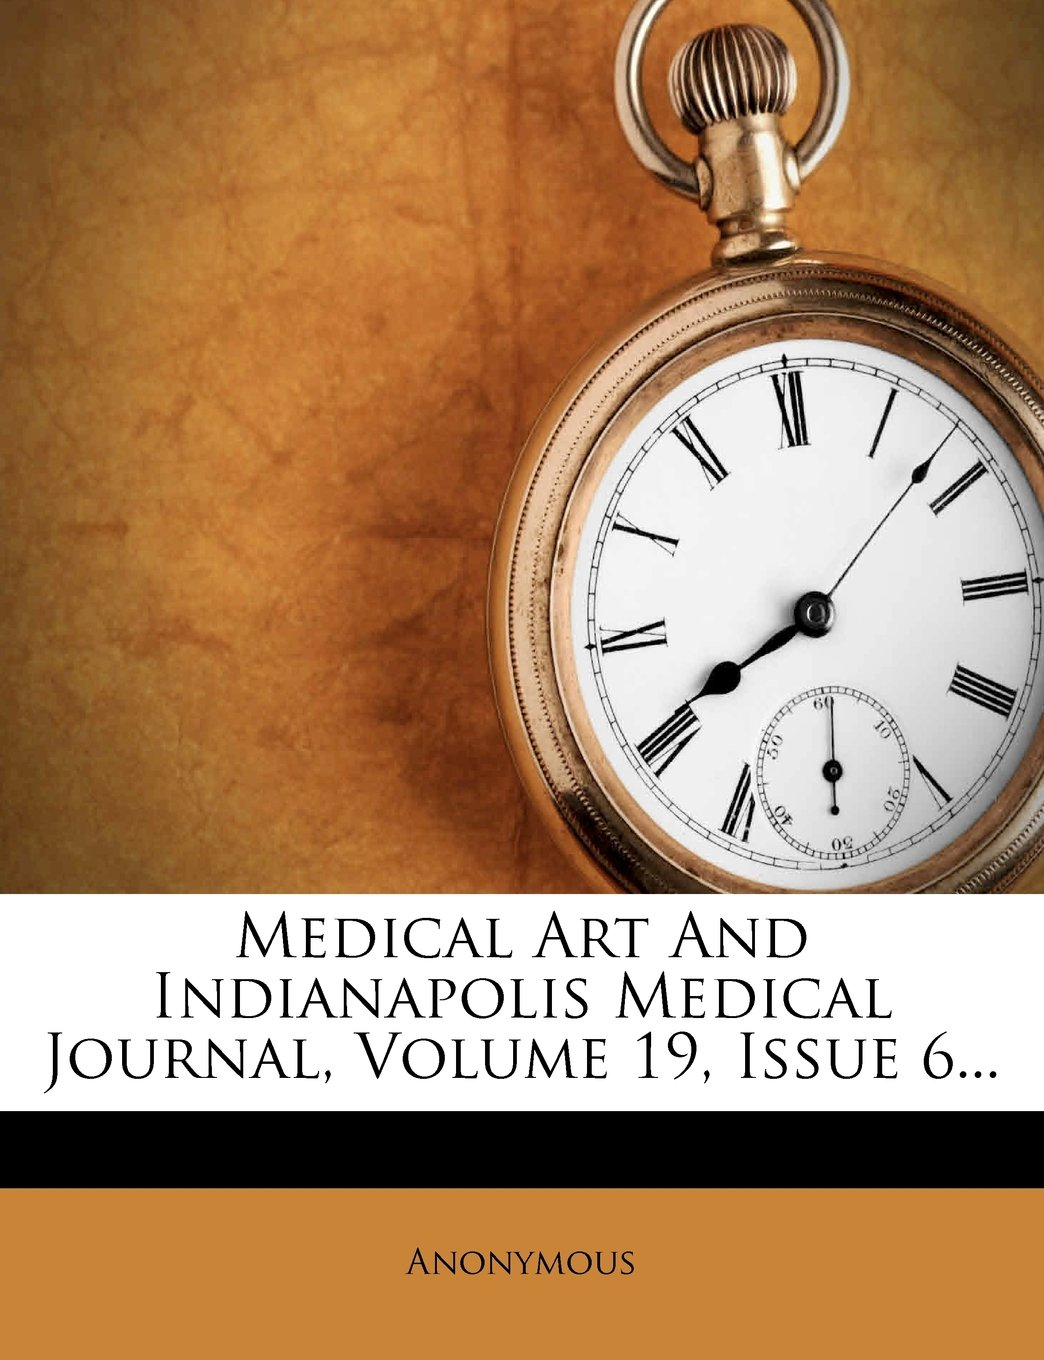 Medical Art and Indianapolis Medical Journal, Volume 19, Issue 6... pdf